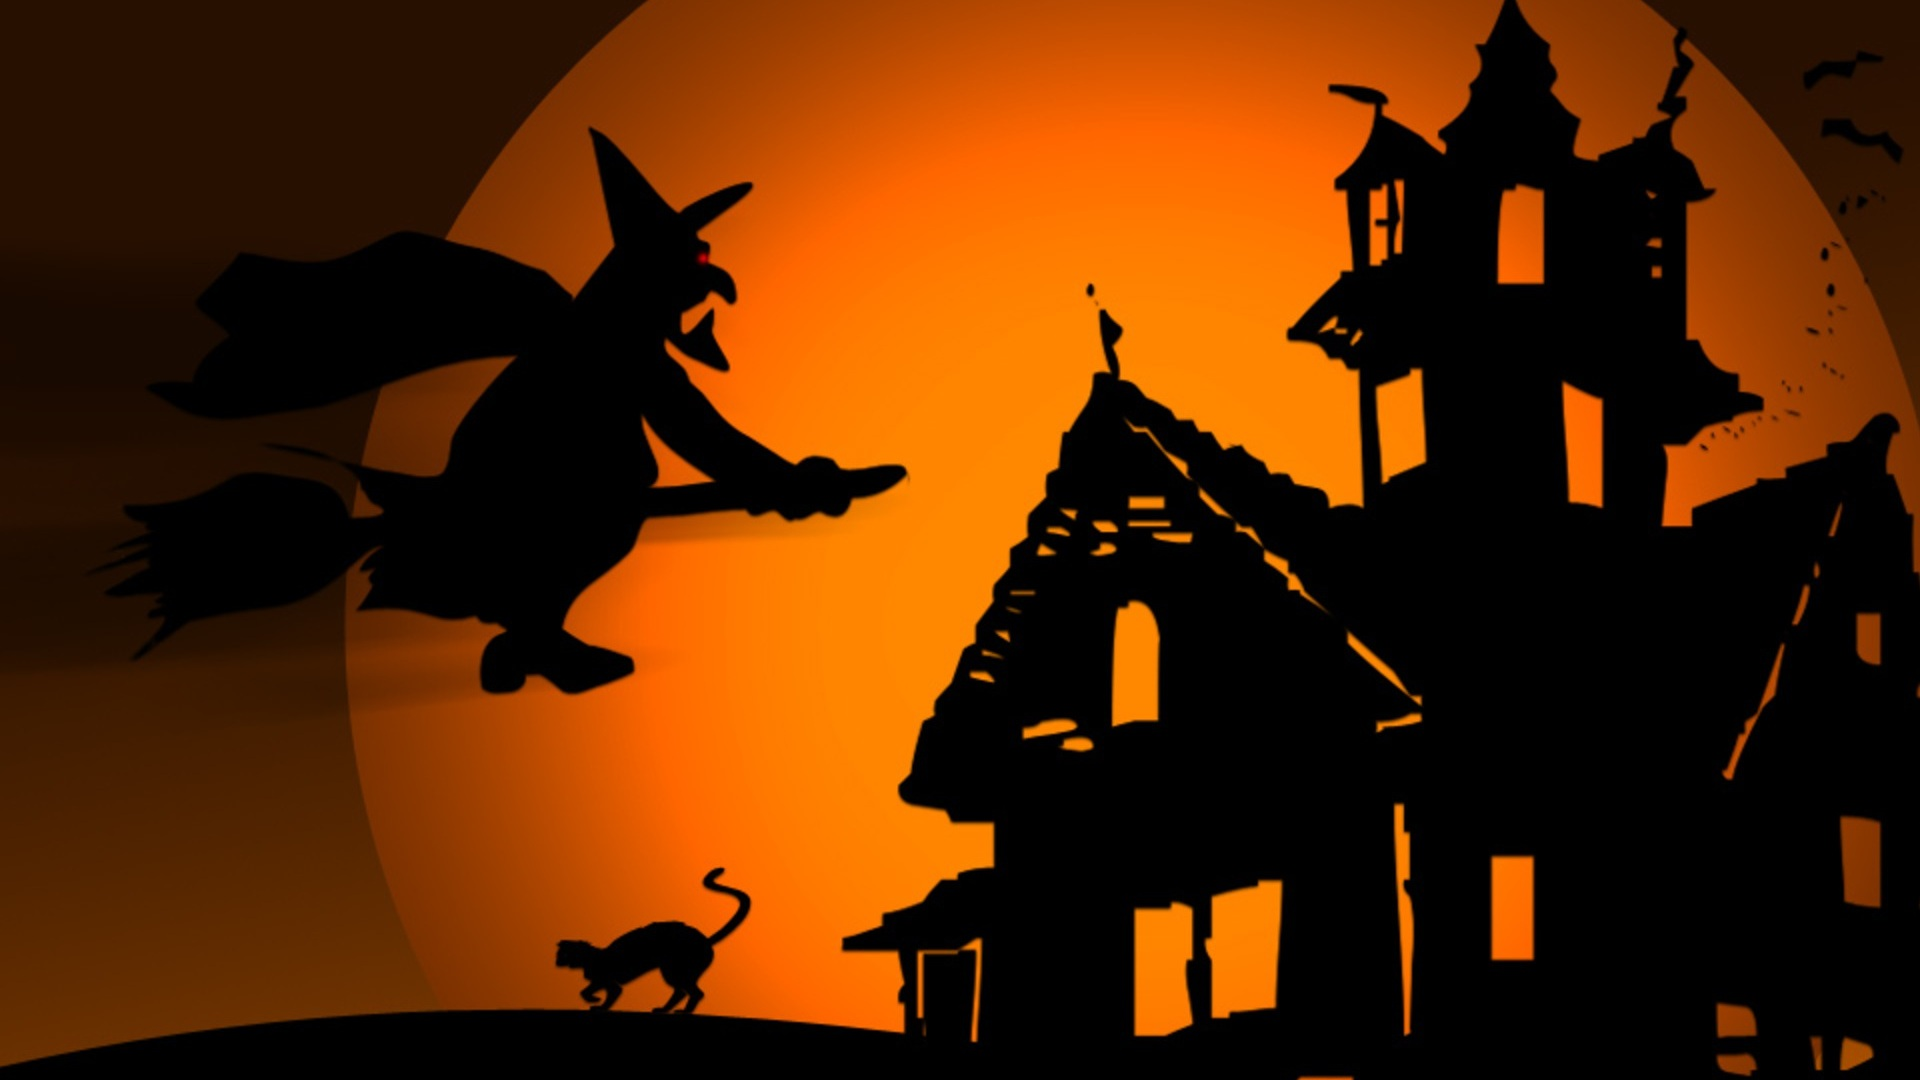 free wallpaper for halloween #11